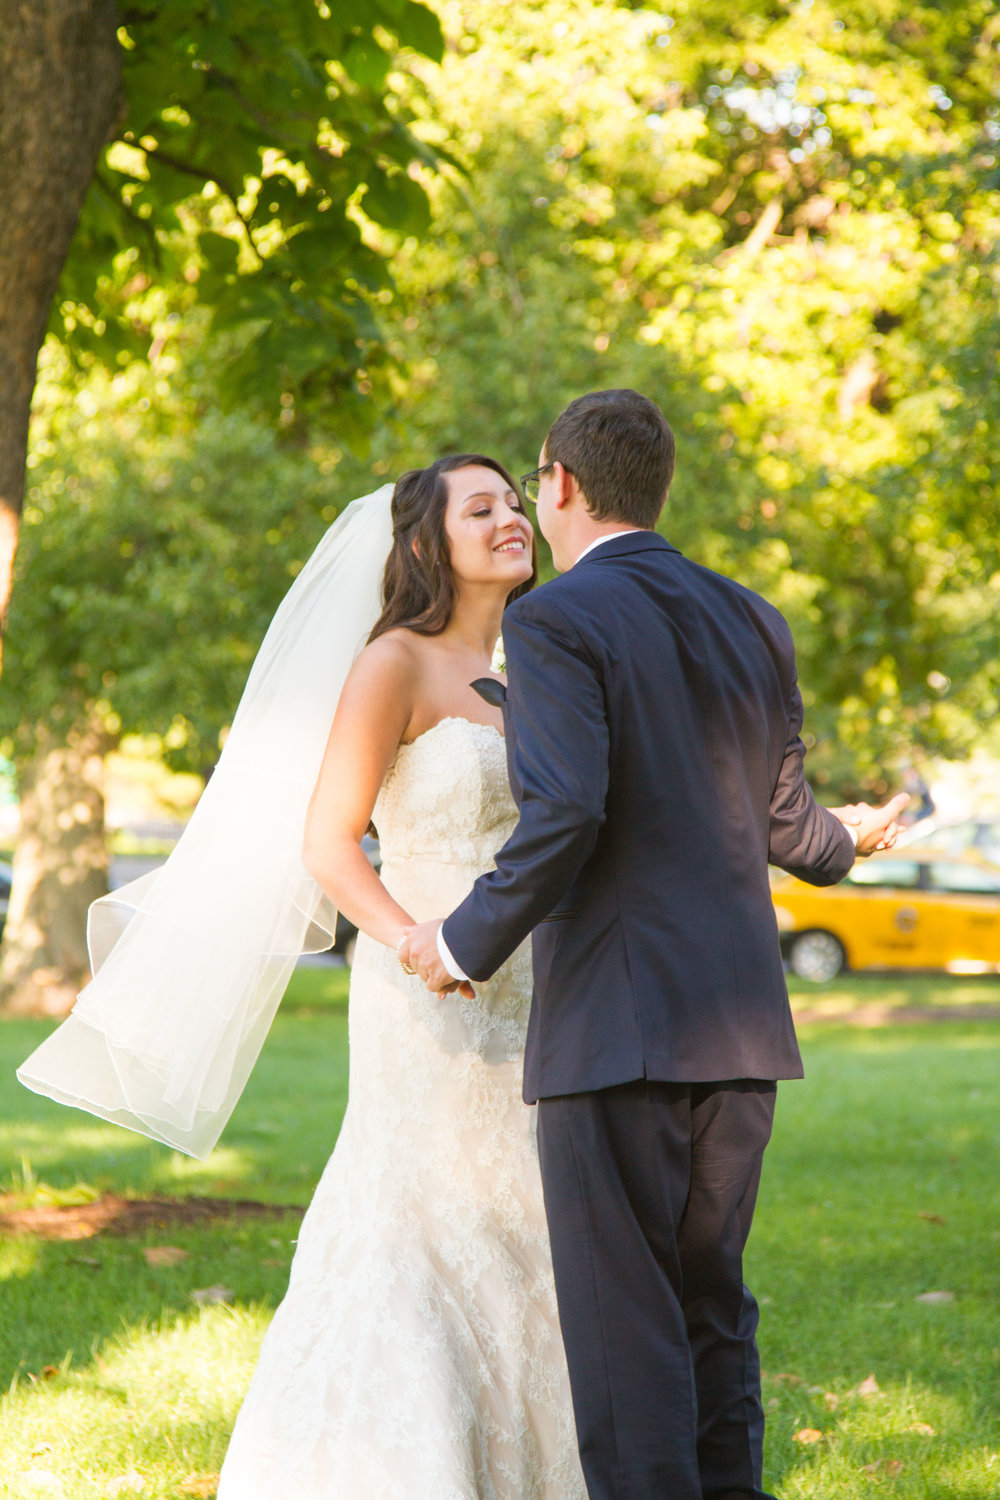 severinphotography-chicago-wedding-photographer